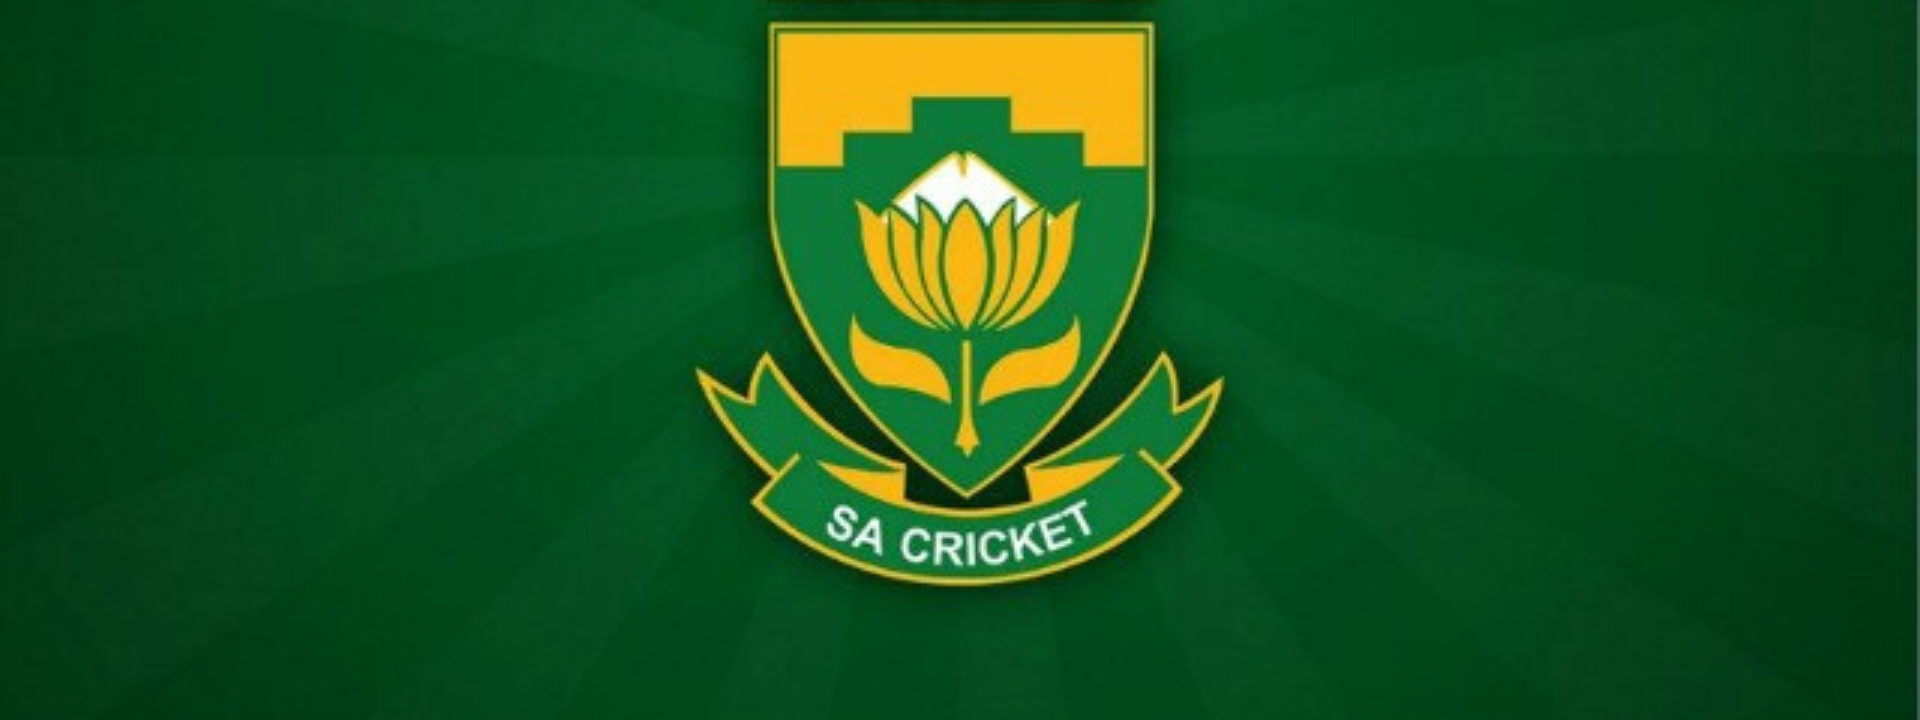 emblem of cricket South Africa